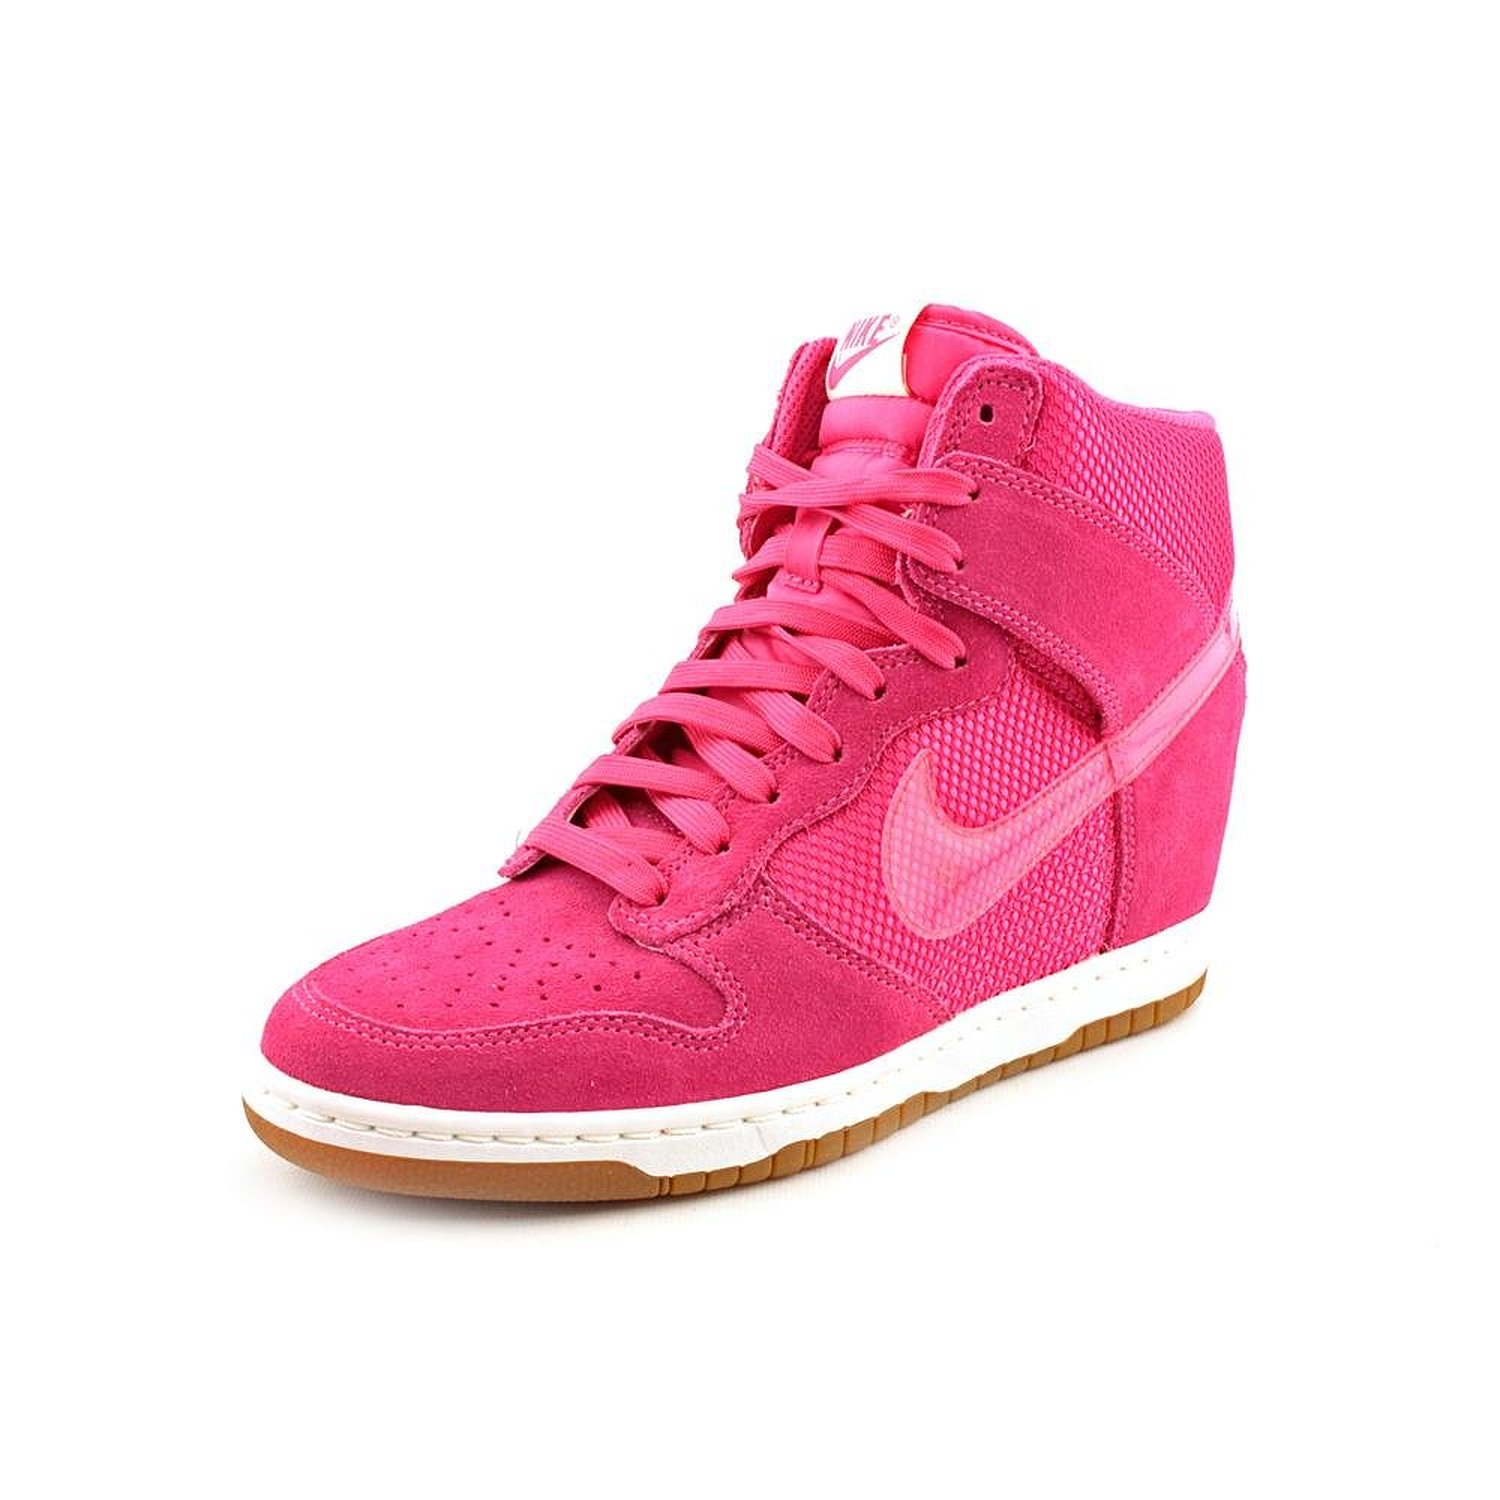 908e8393cb4e5 Amazon.com: Nike Dunk Sky Hi Womens Size 8 Pink Mesh Sneakers Shoes UK 5.5  EU 39: Shoes: Shoes